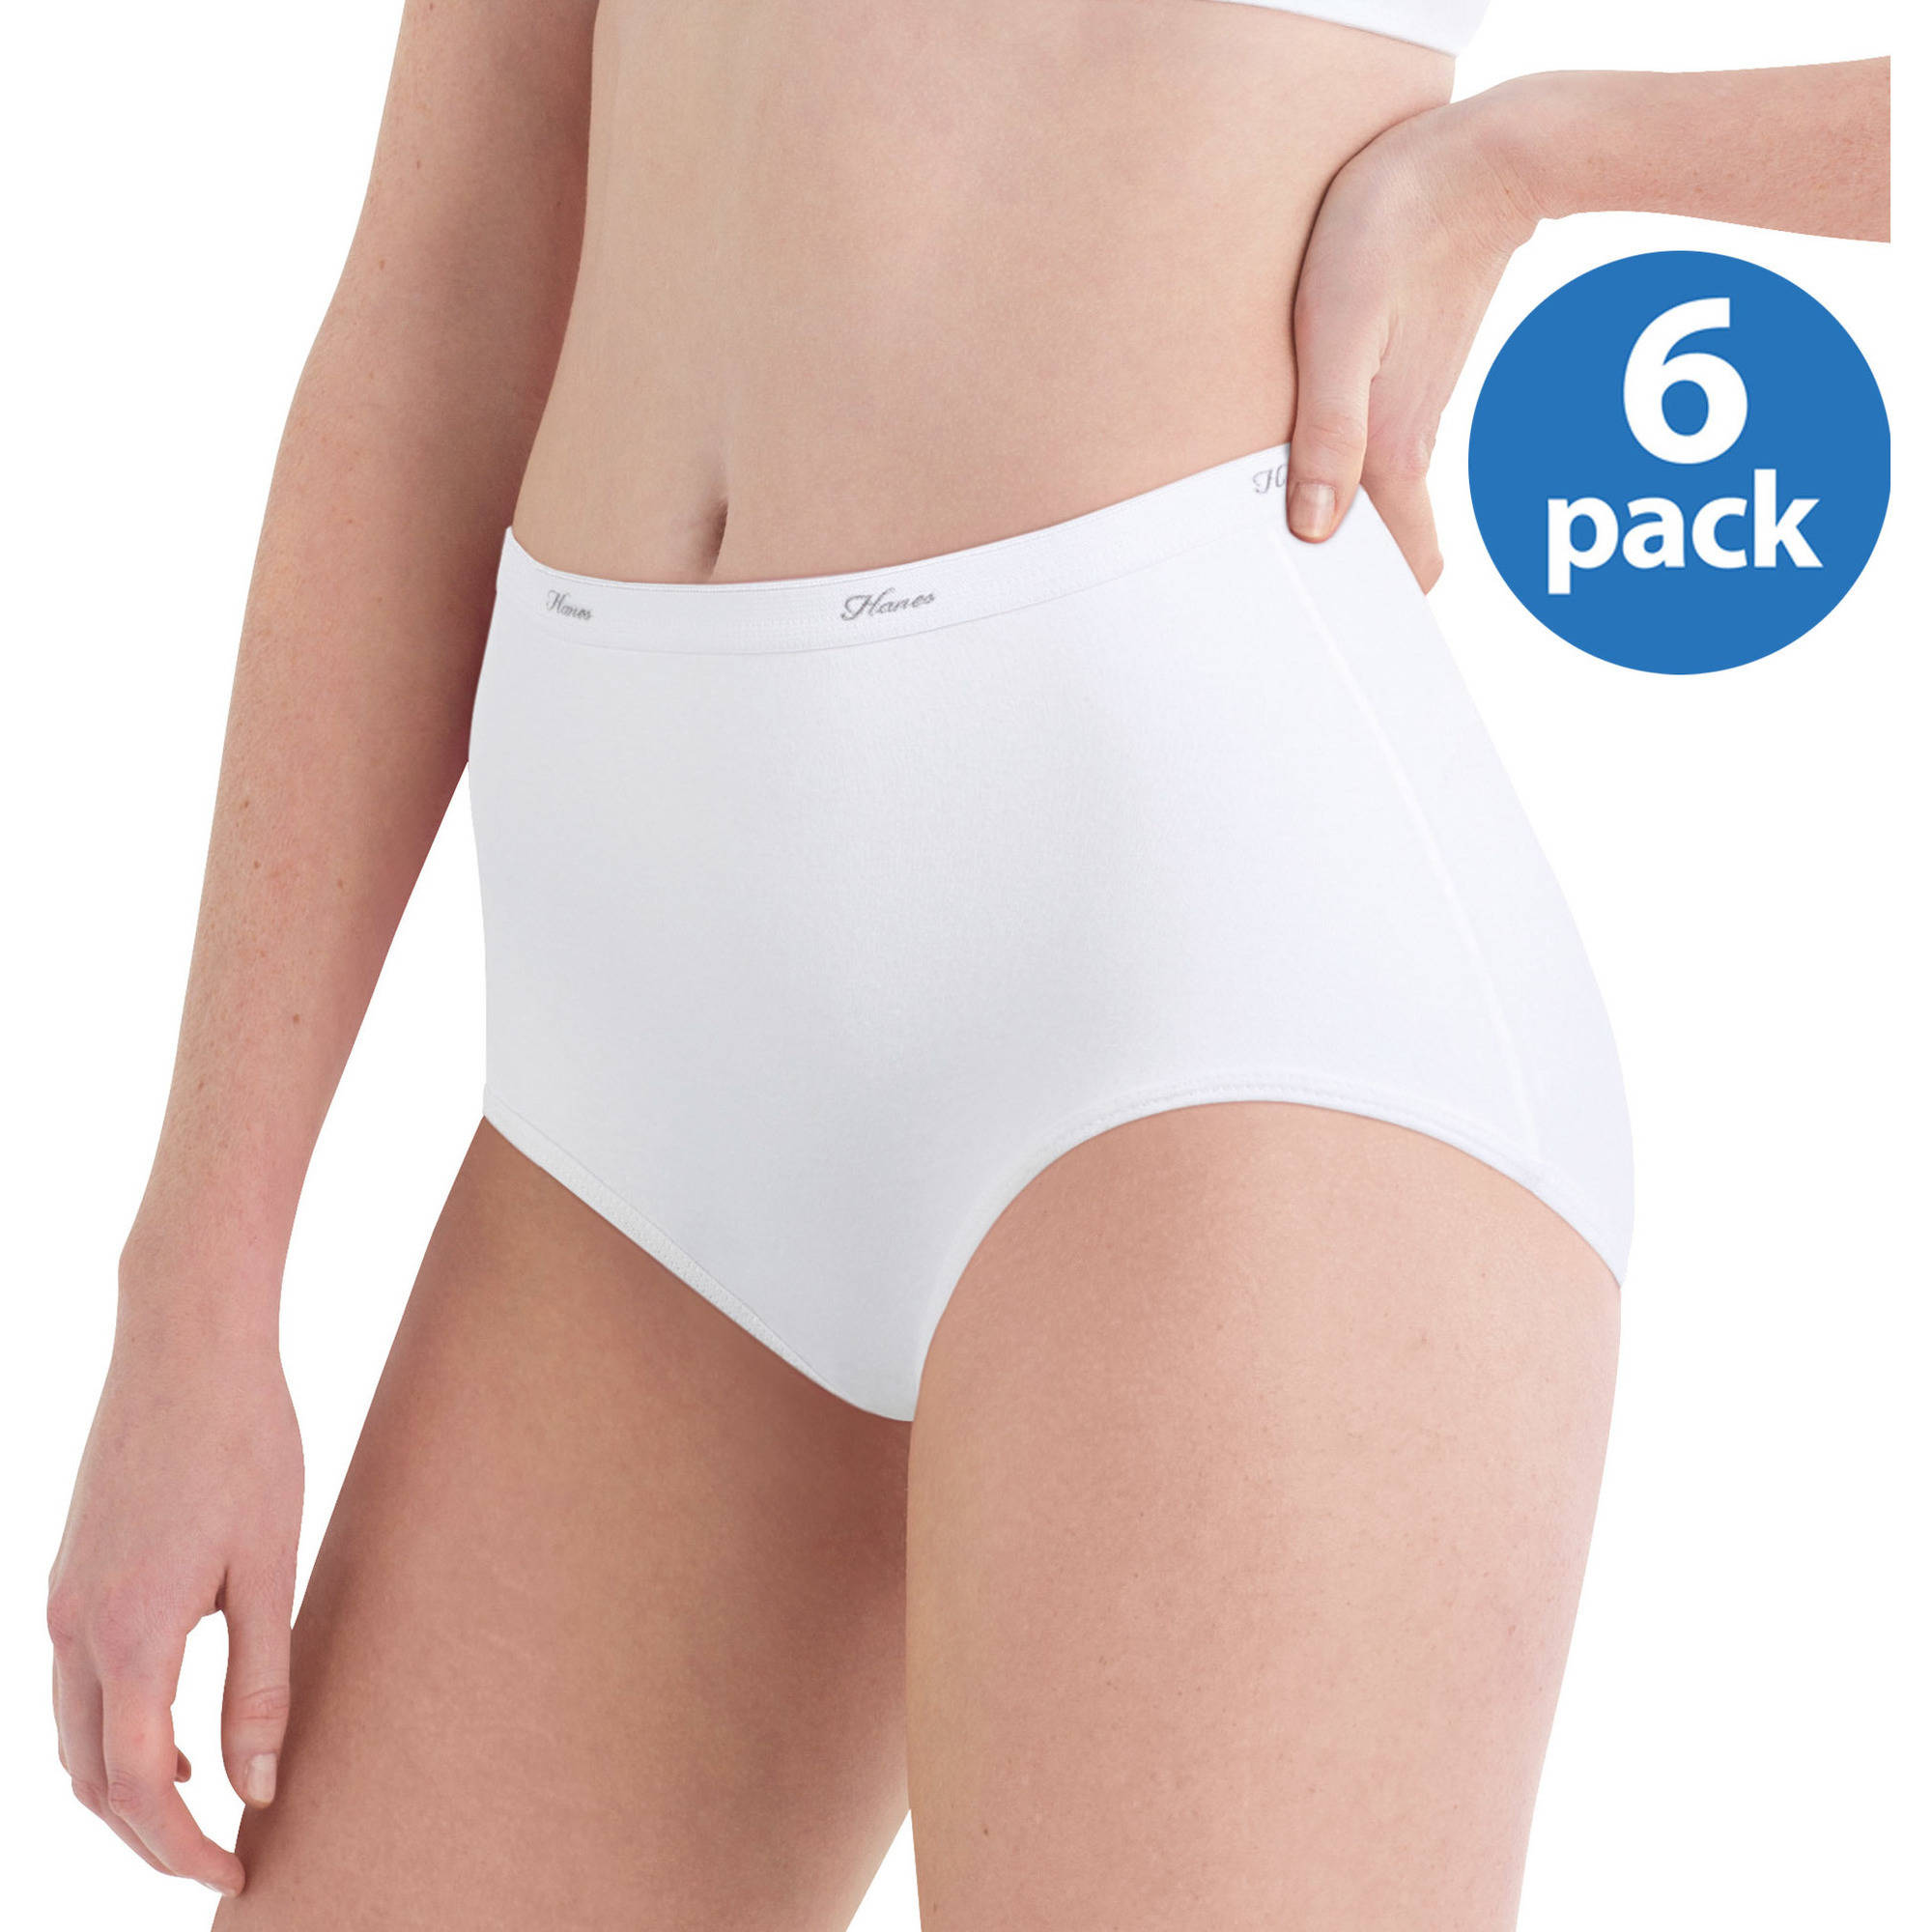 Hanes Women's Cotton Brief Panties 6-Pack